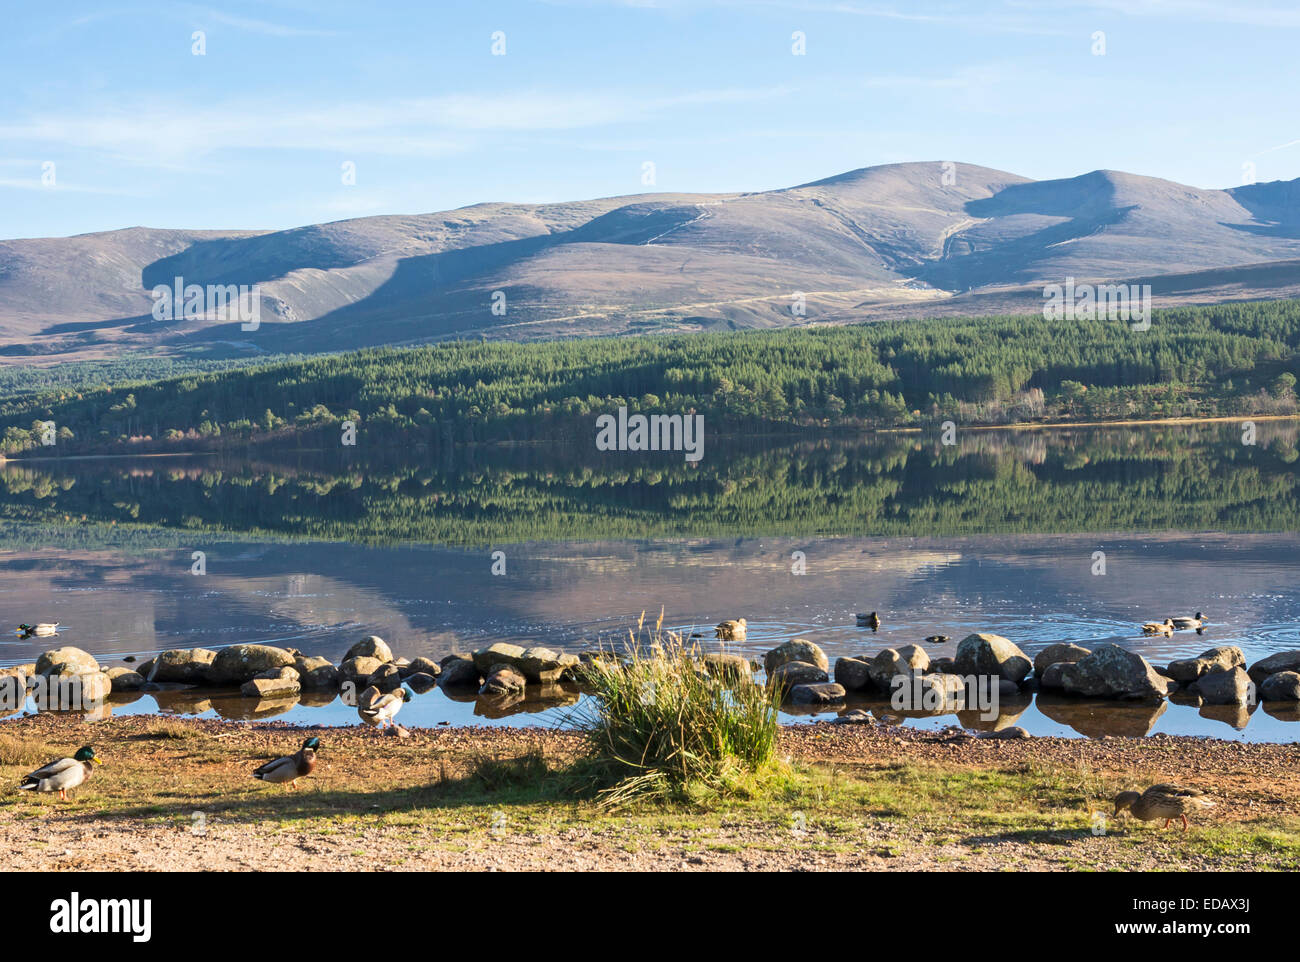 Loch Morlich in the Cairngorms region of Scotland on a calm and sunny autumn day with mountain Cairn Gorm centre - Stock Image